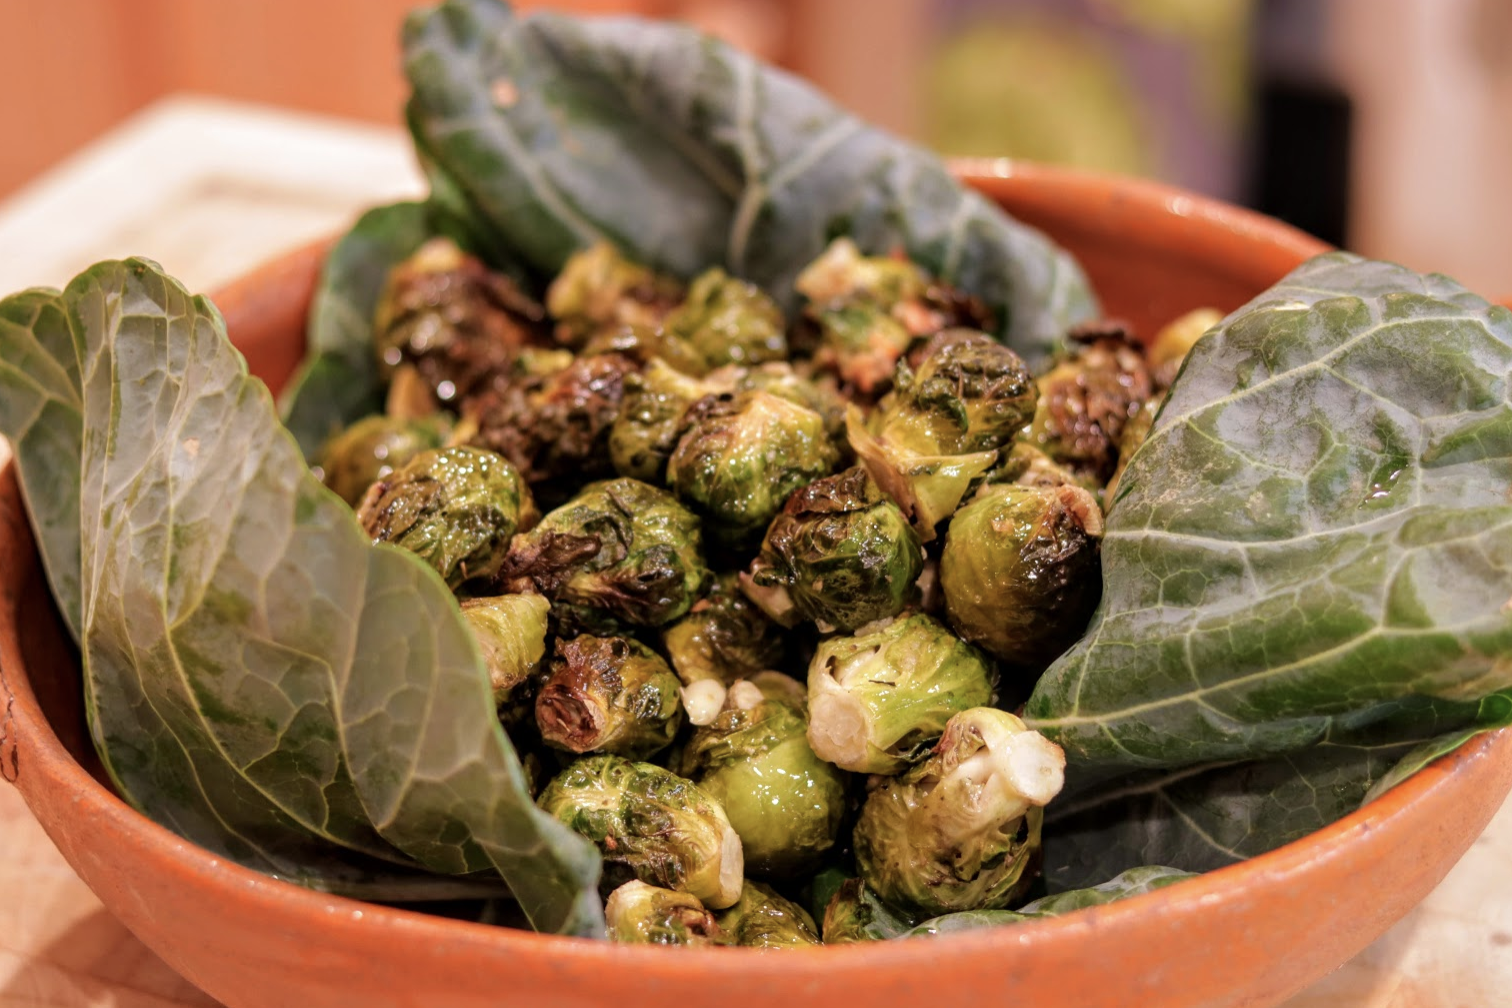 The finished dish of simple yet delicious, Brussels sprouts. Credit: Olivia Sanford / The Foothill Dragon Press